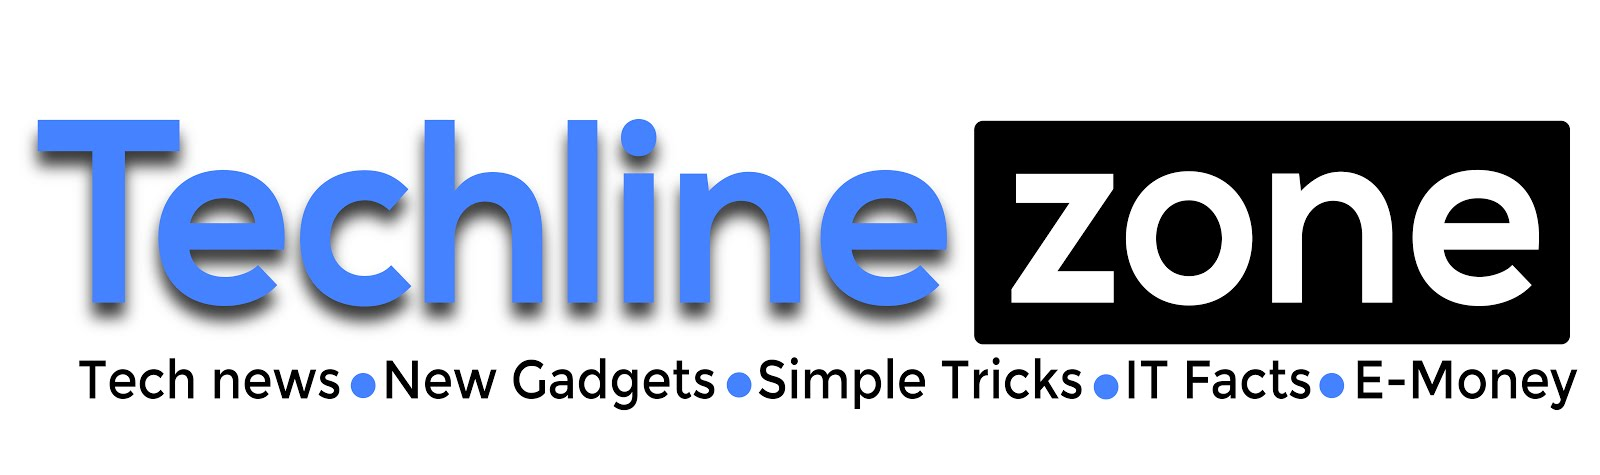 Techline zone